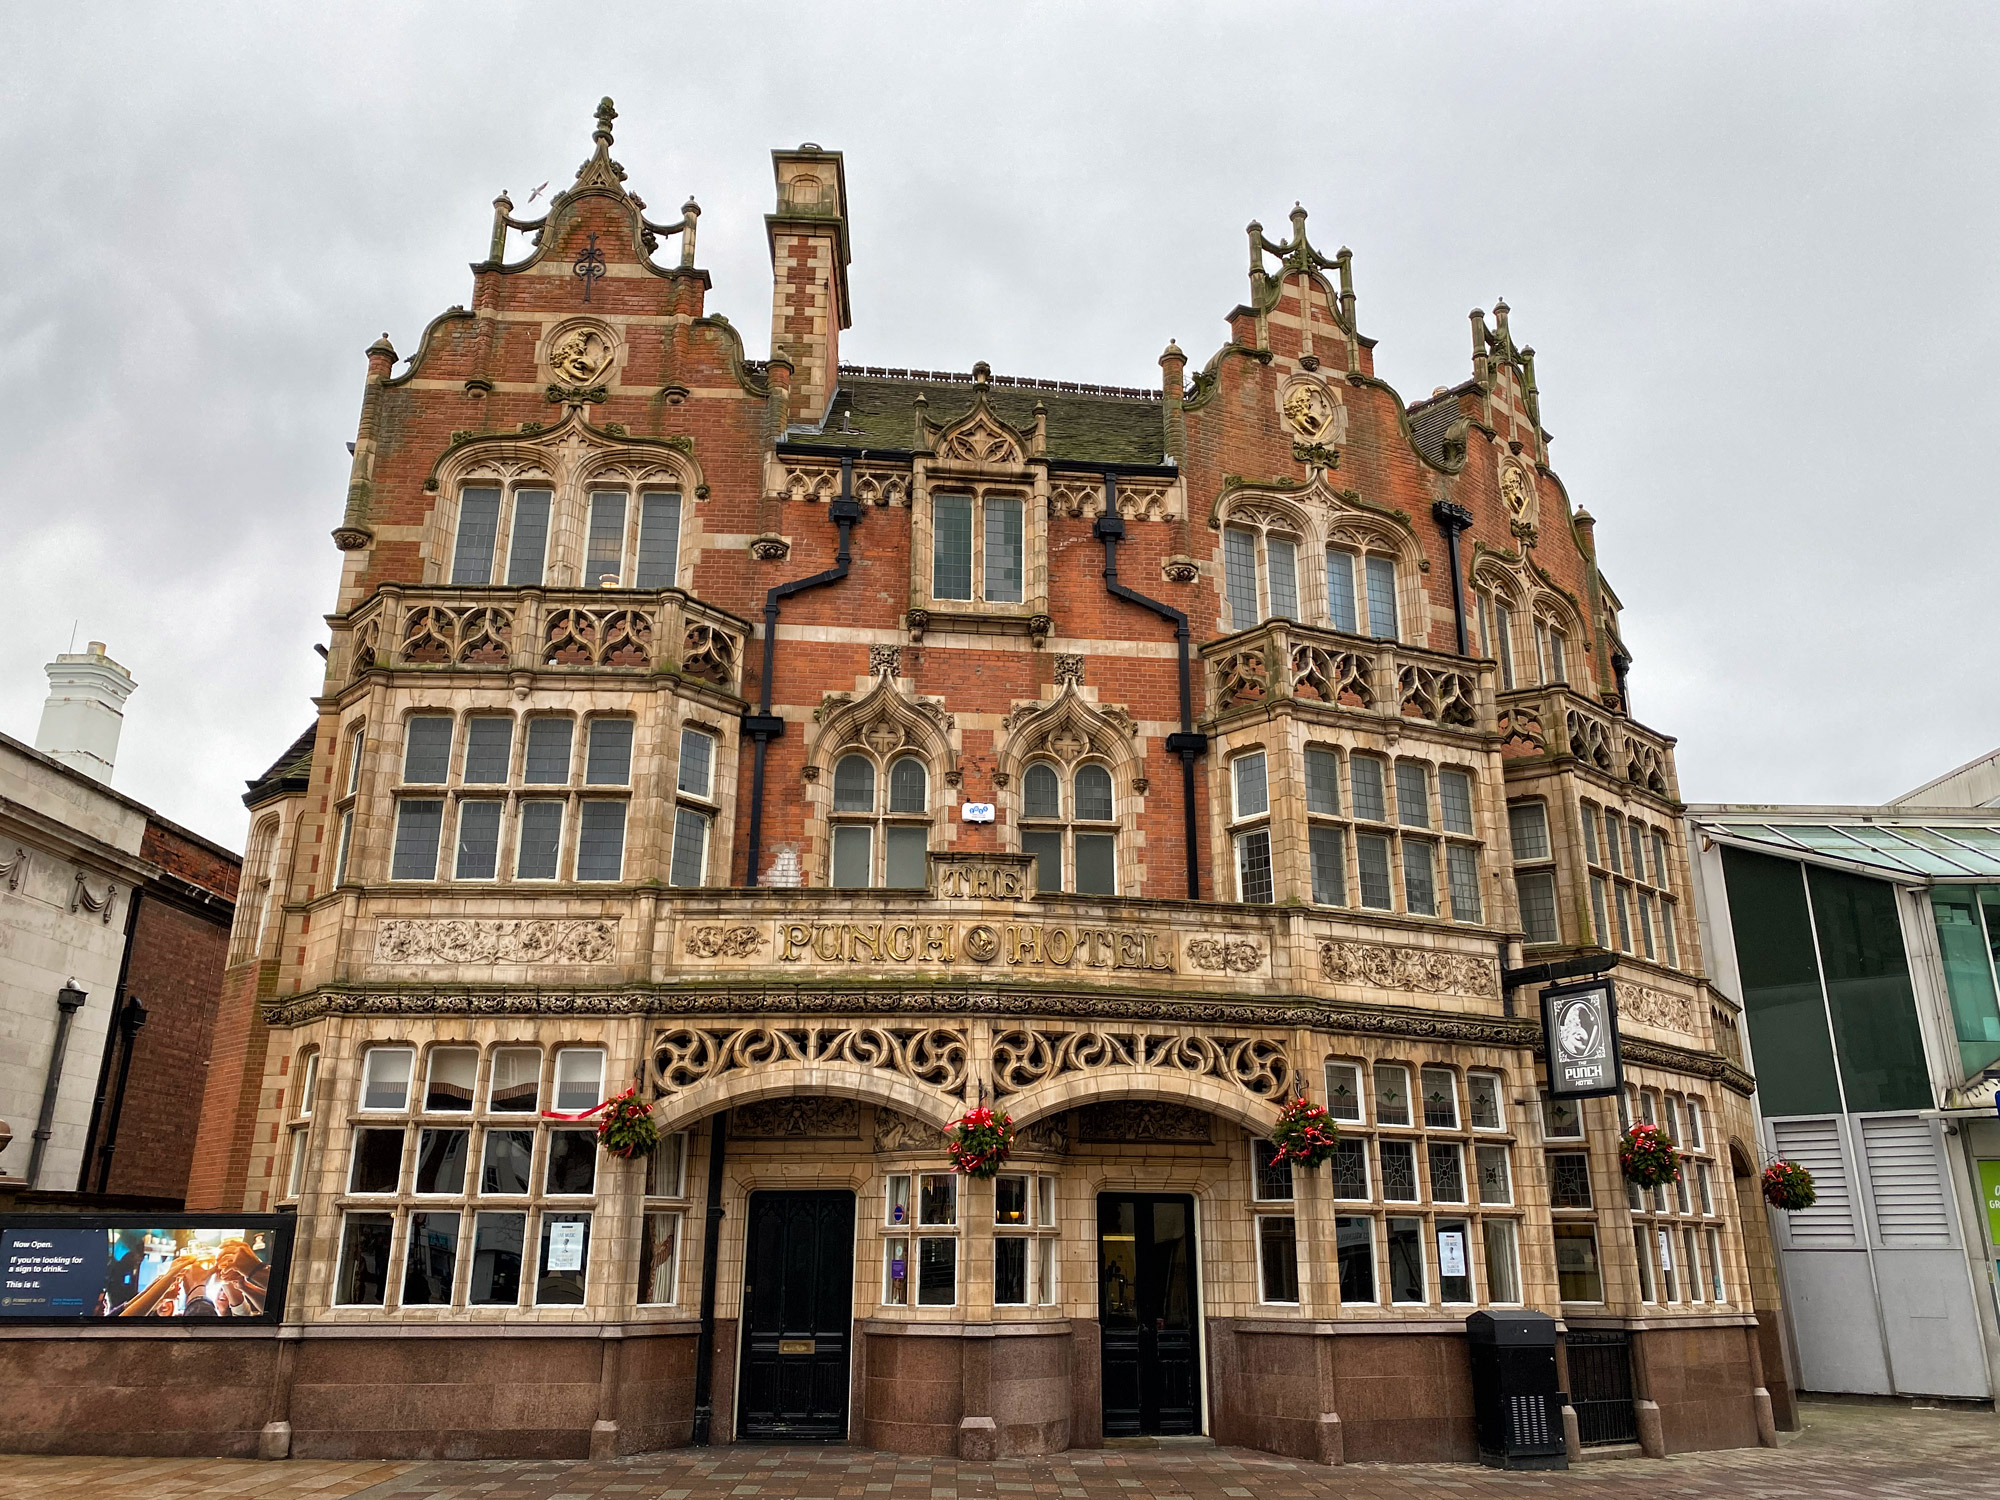 Stedentrip Hull - The Punch Hotel